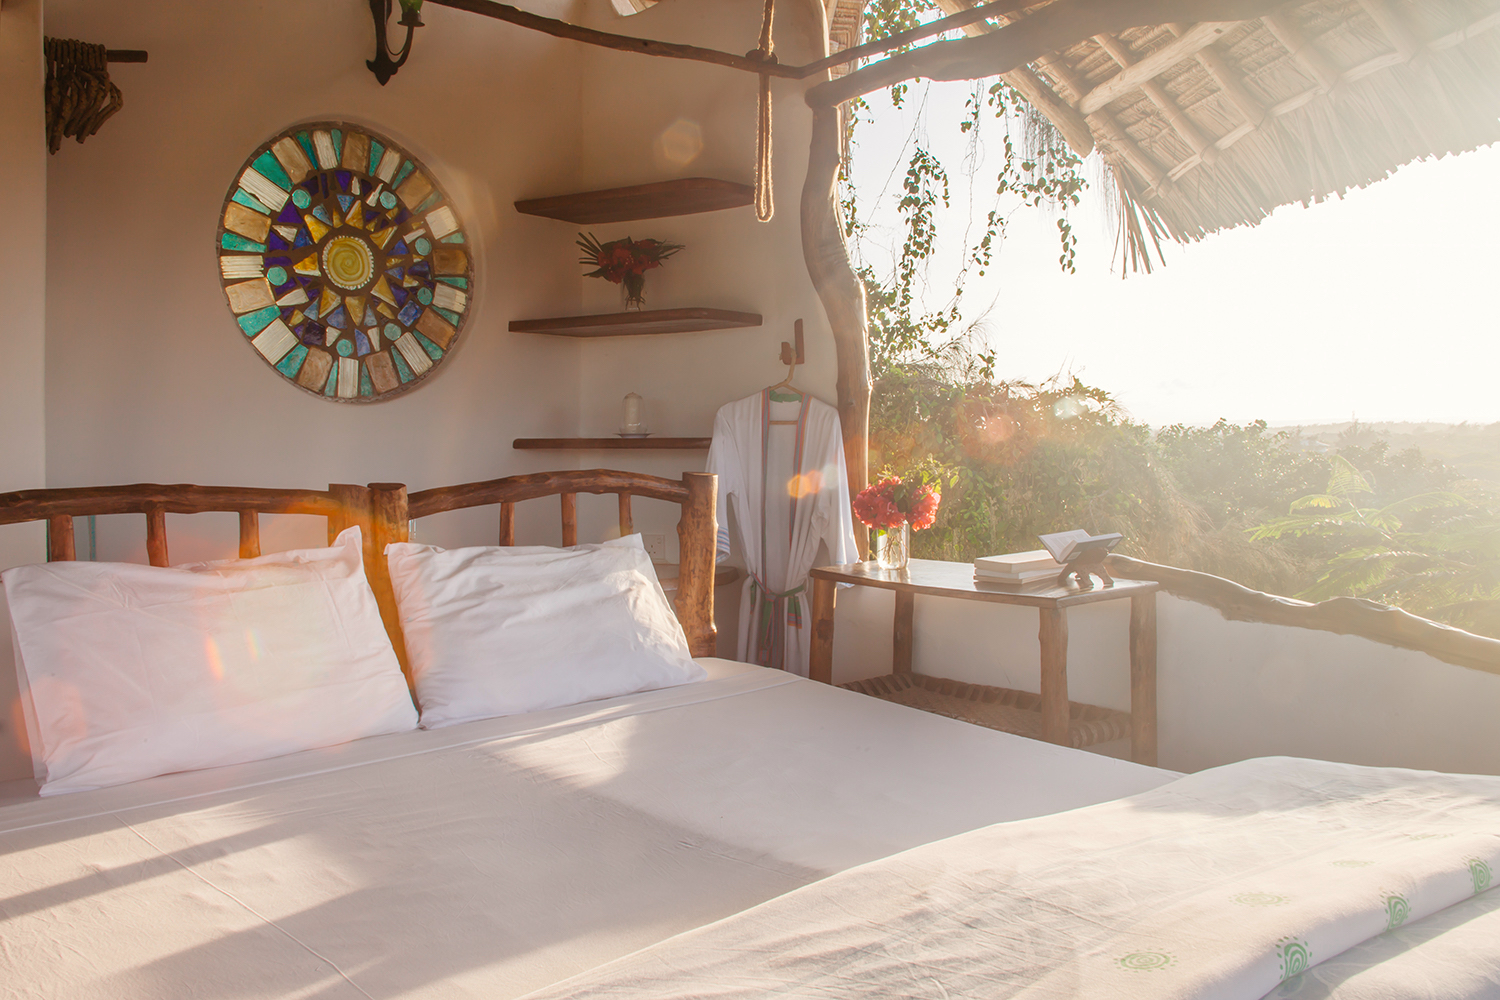 Baobab suite - the perfect escape - and views of the mangrove estuary.